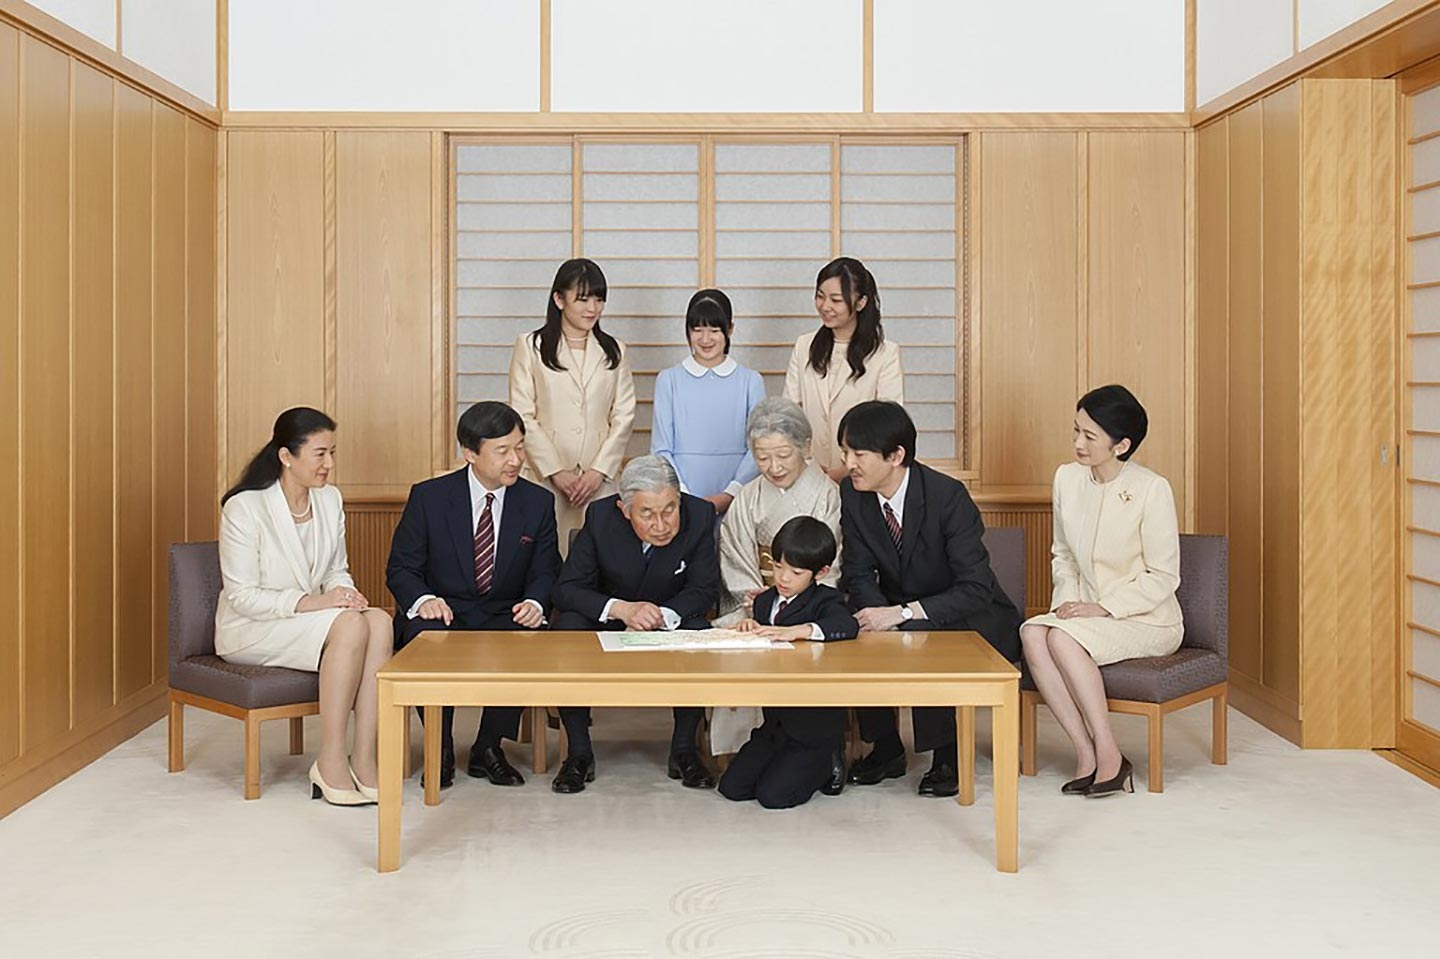 emperor_akihito_and_empress_michiko_with_the_imperial_family_november_2013